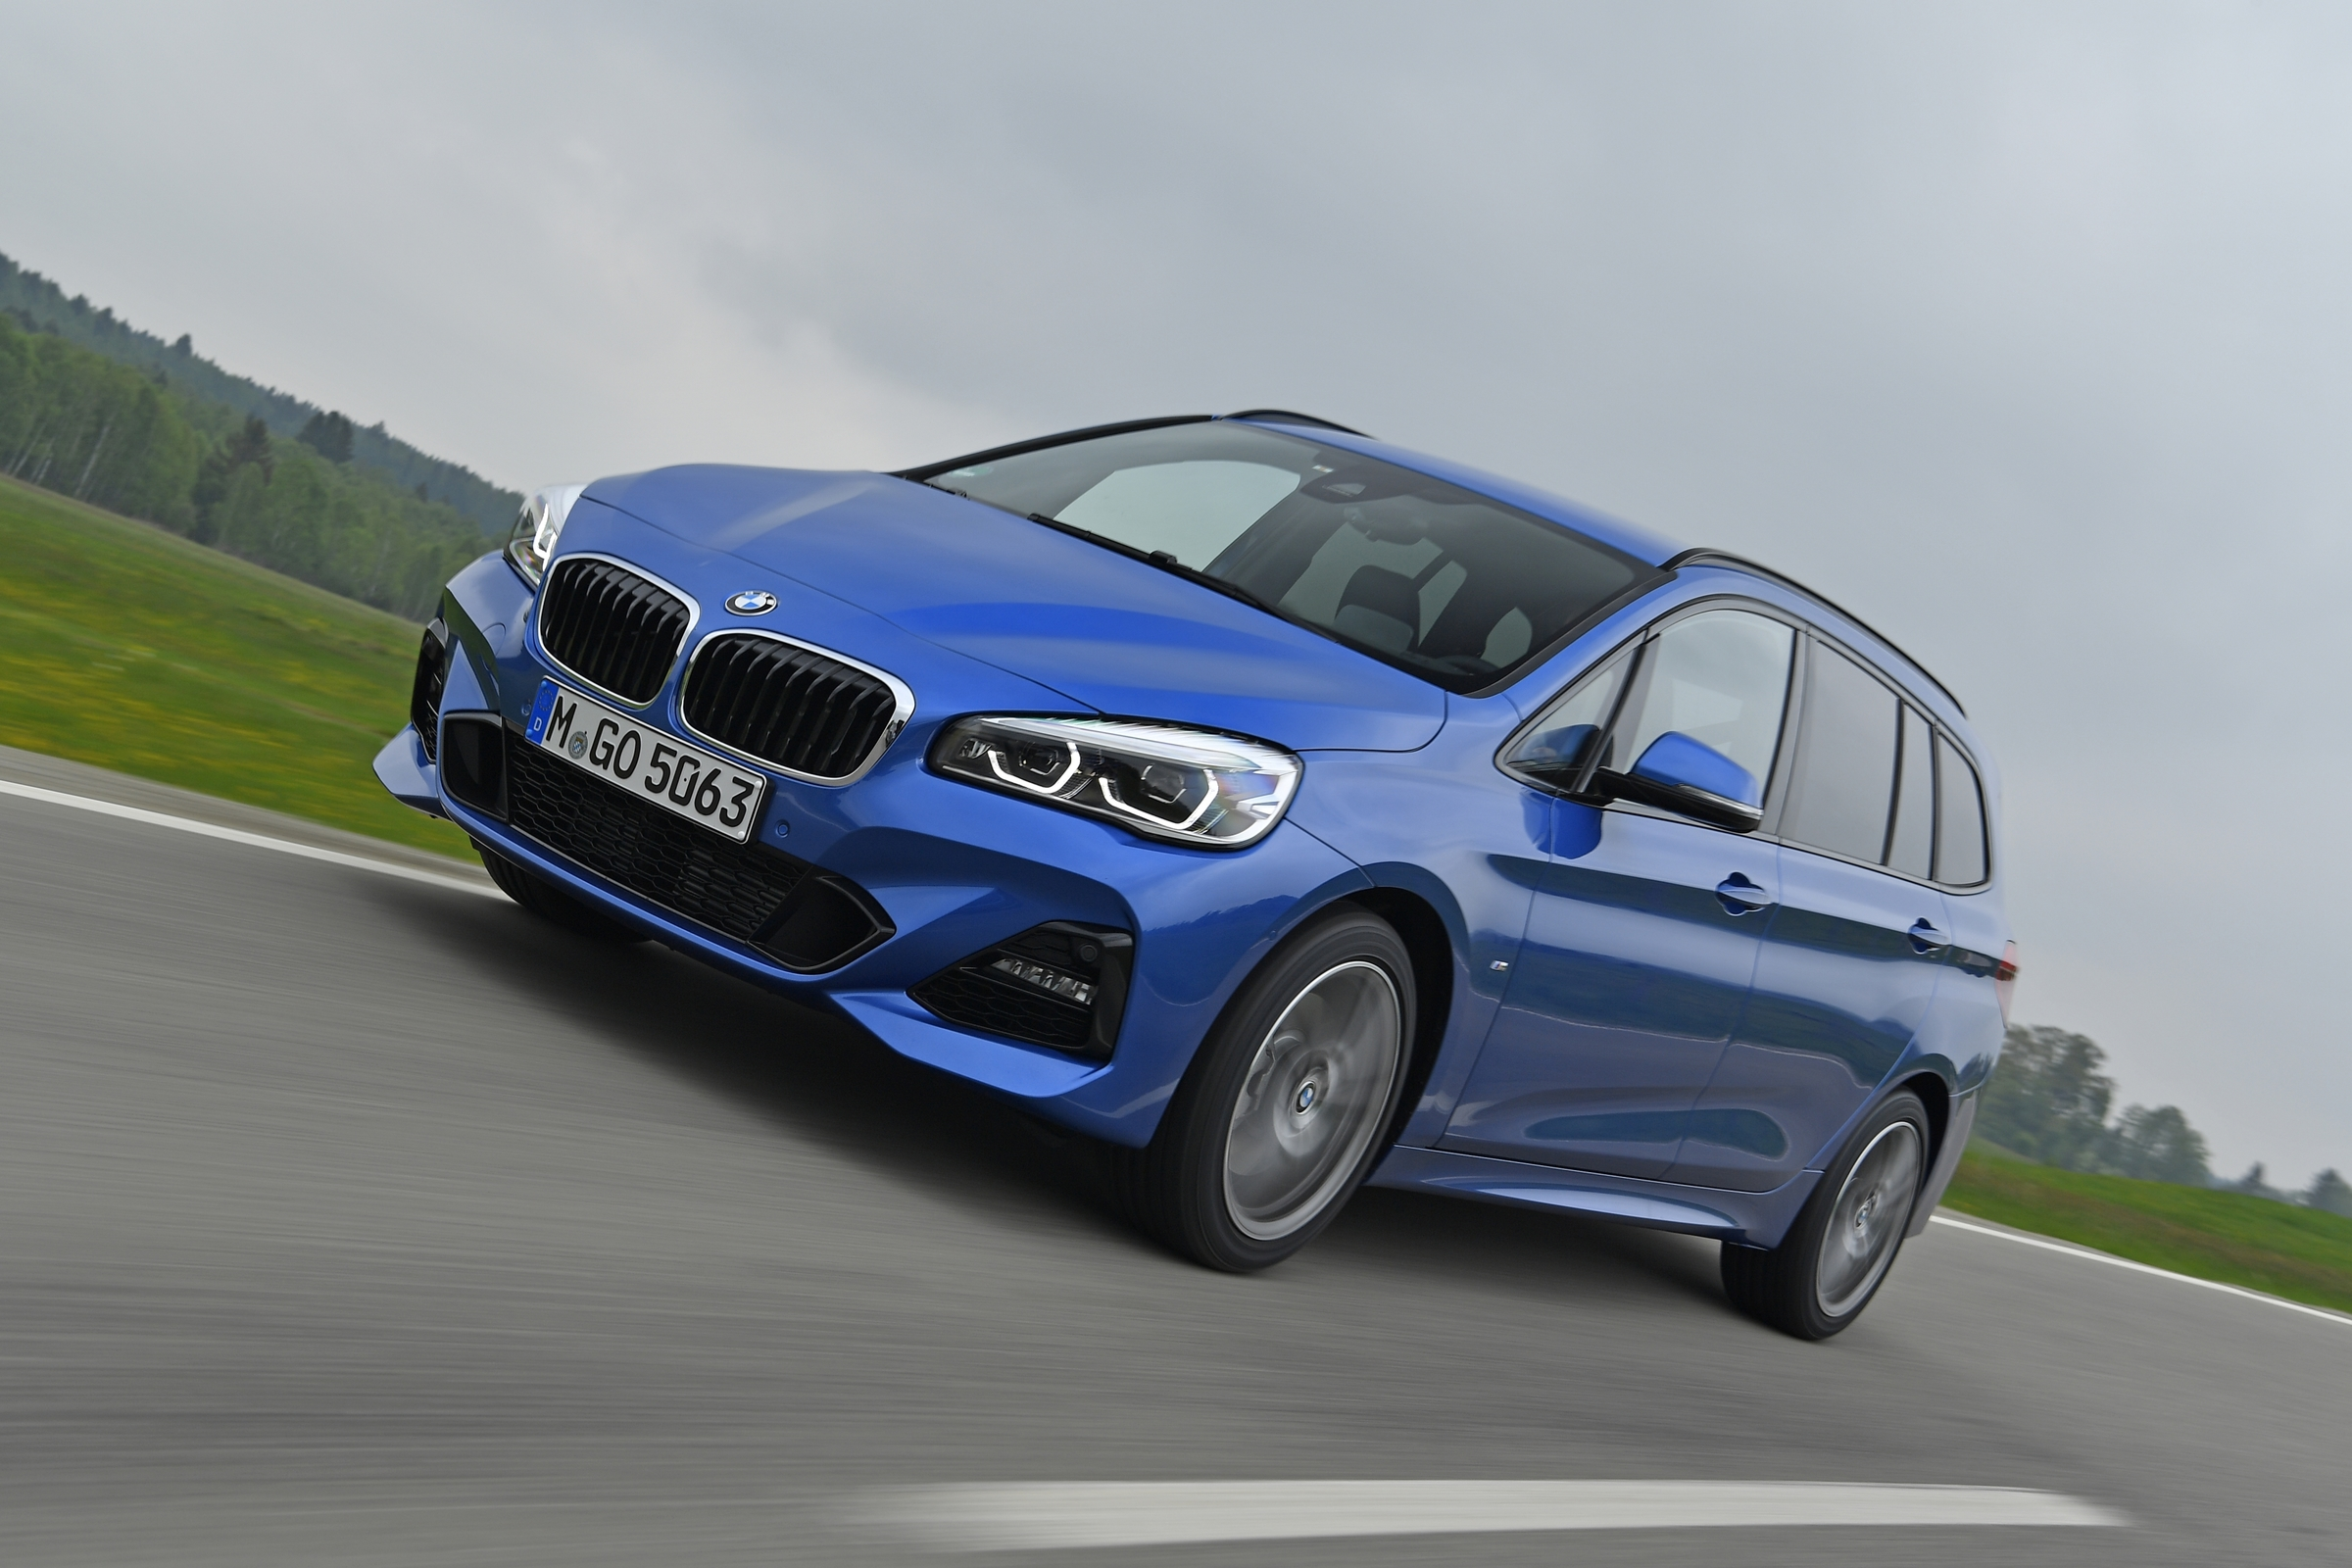 BMW 2er Gran Tourer in blau